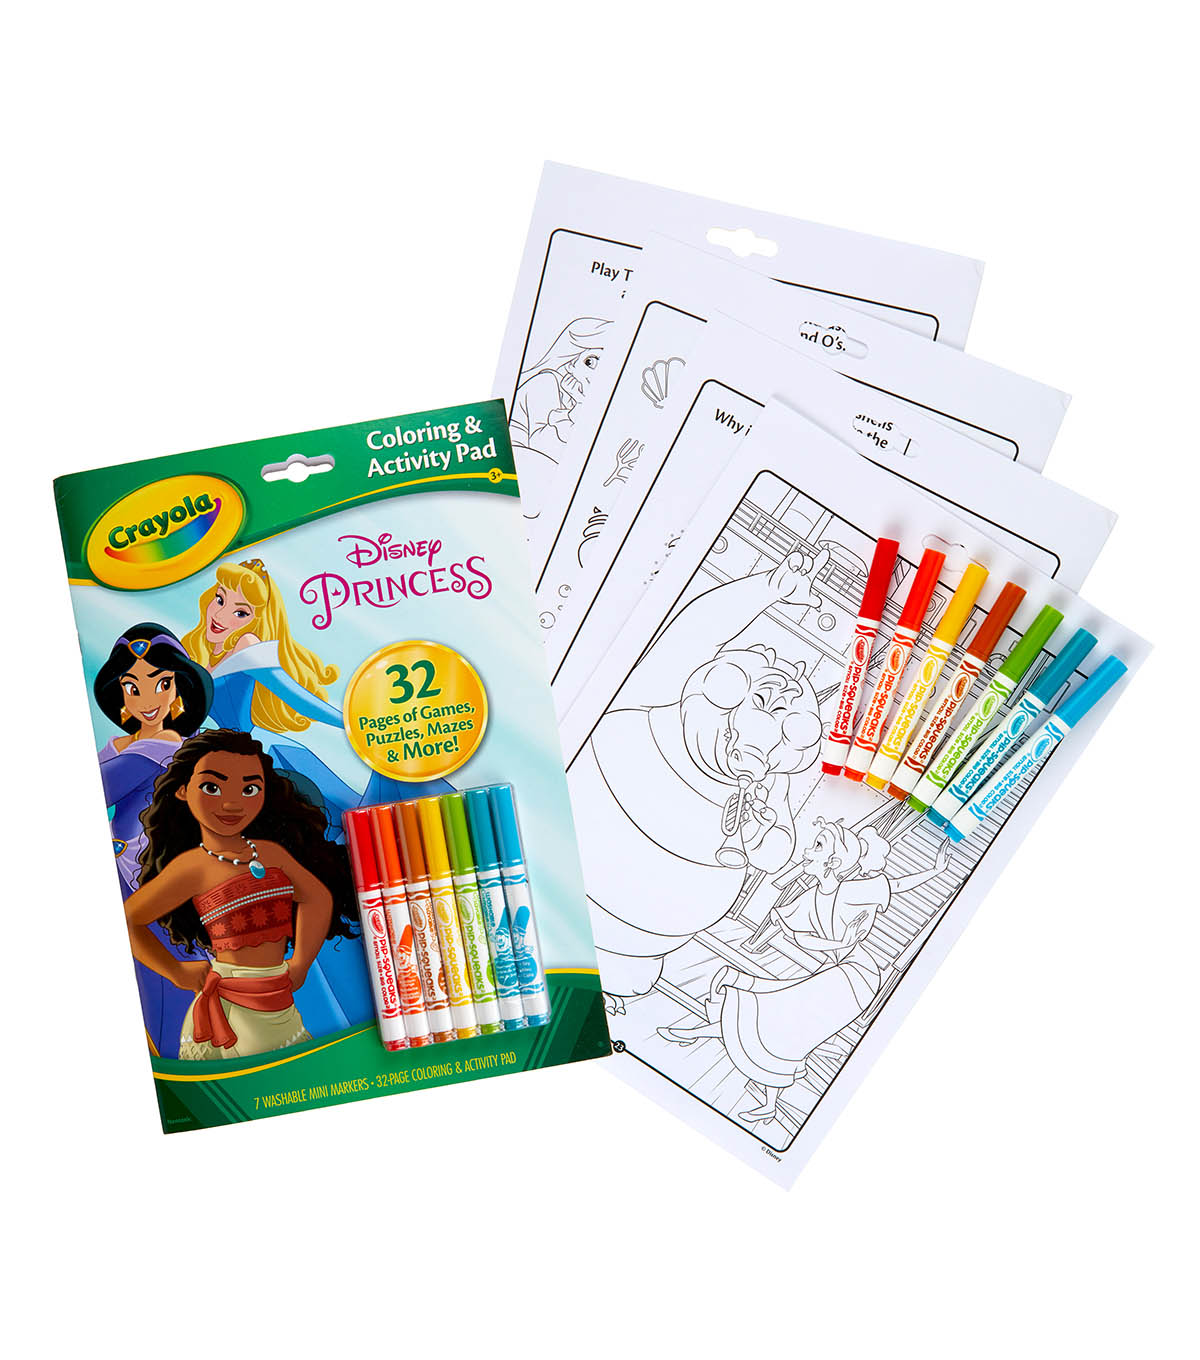 Crayola Coloring & Activity Set-Disney Princess